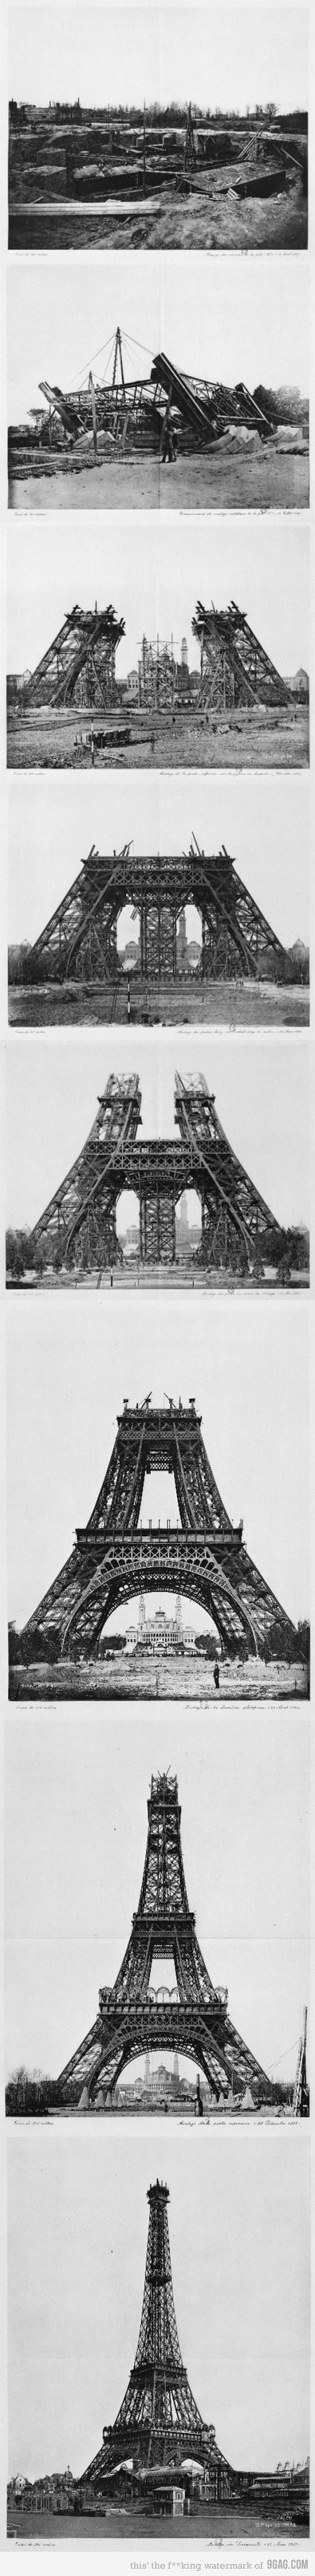 Eiffel Tower..... i only post this for my MOM! she may not be on FB but she would appriciate this.... the Eiffel Tower is her favorite!